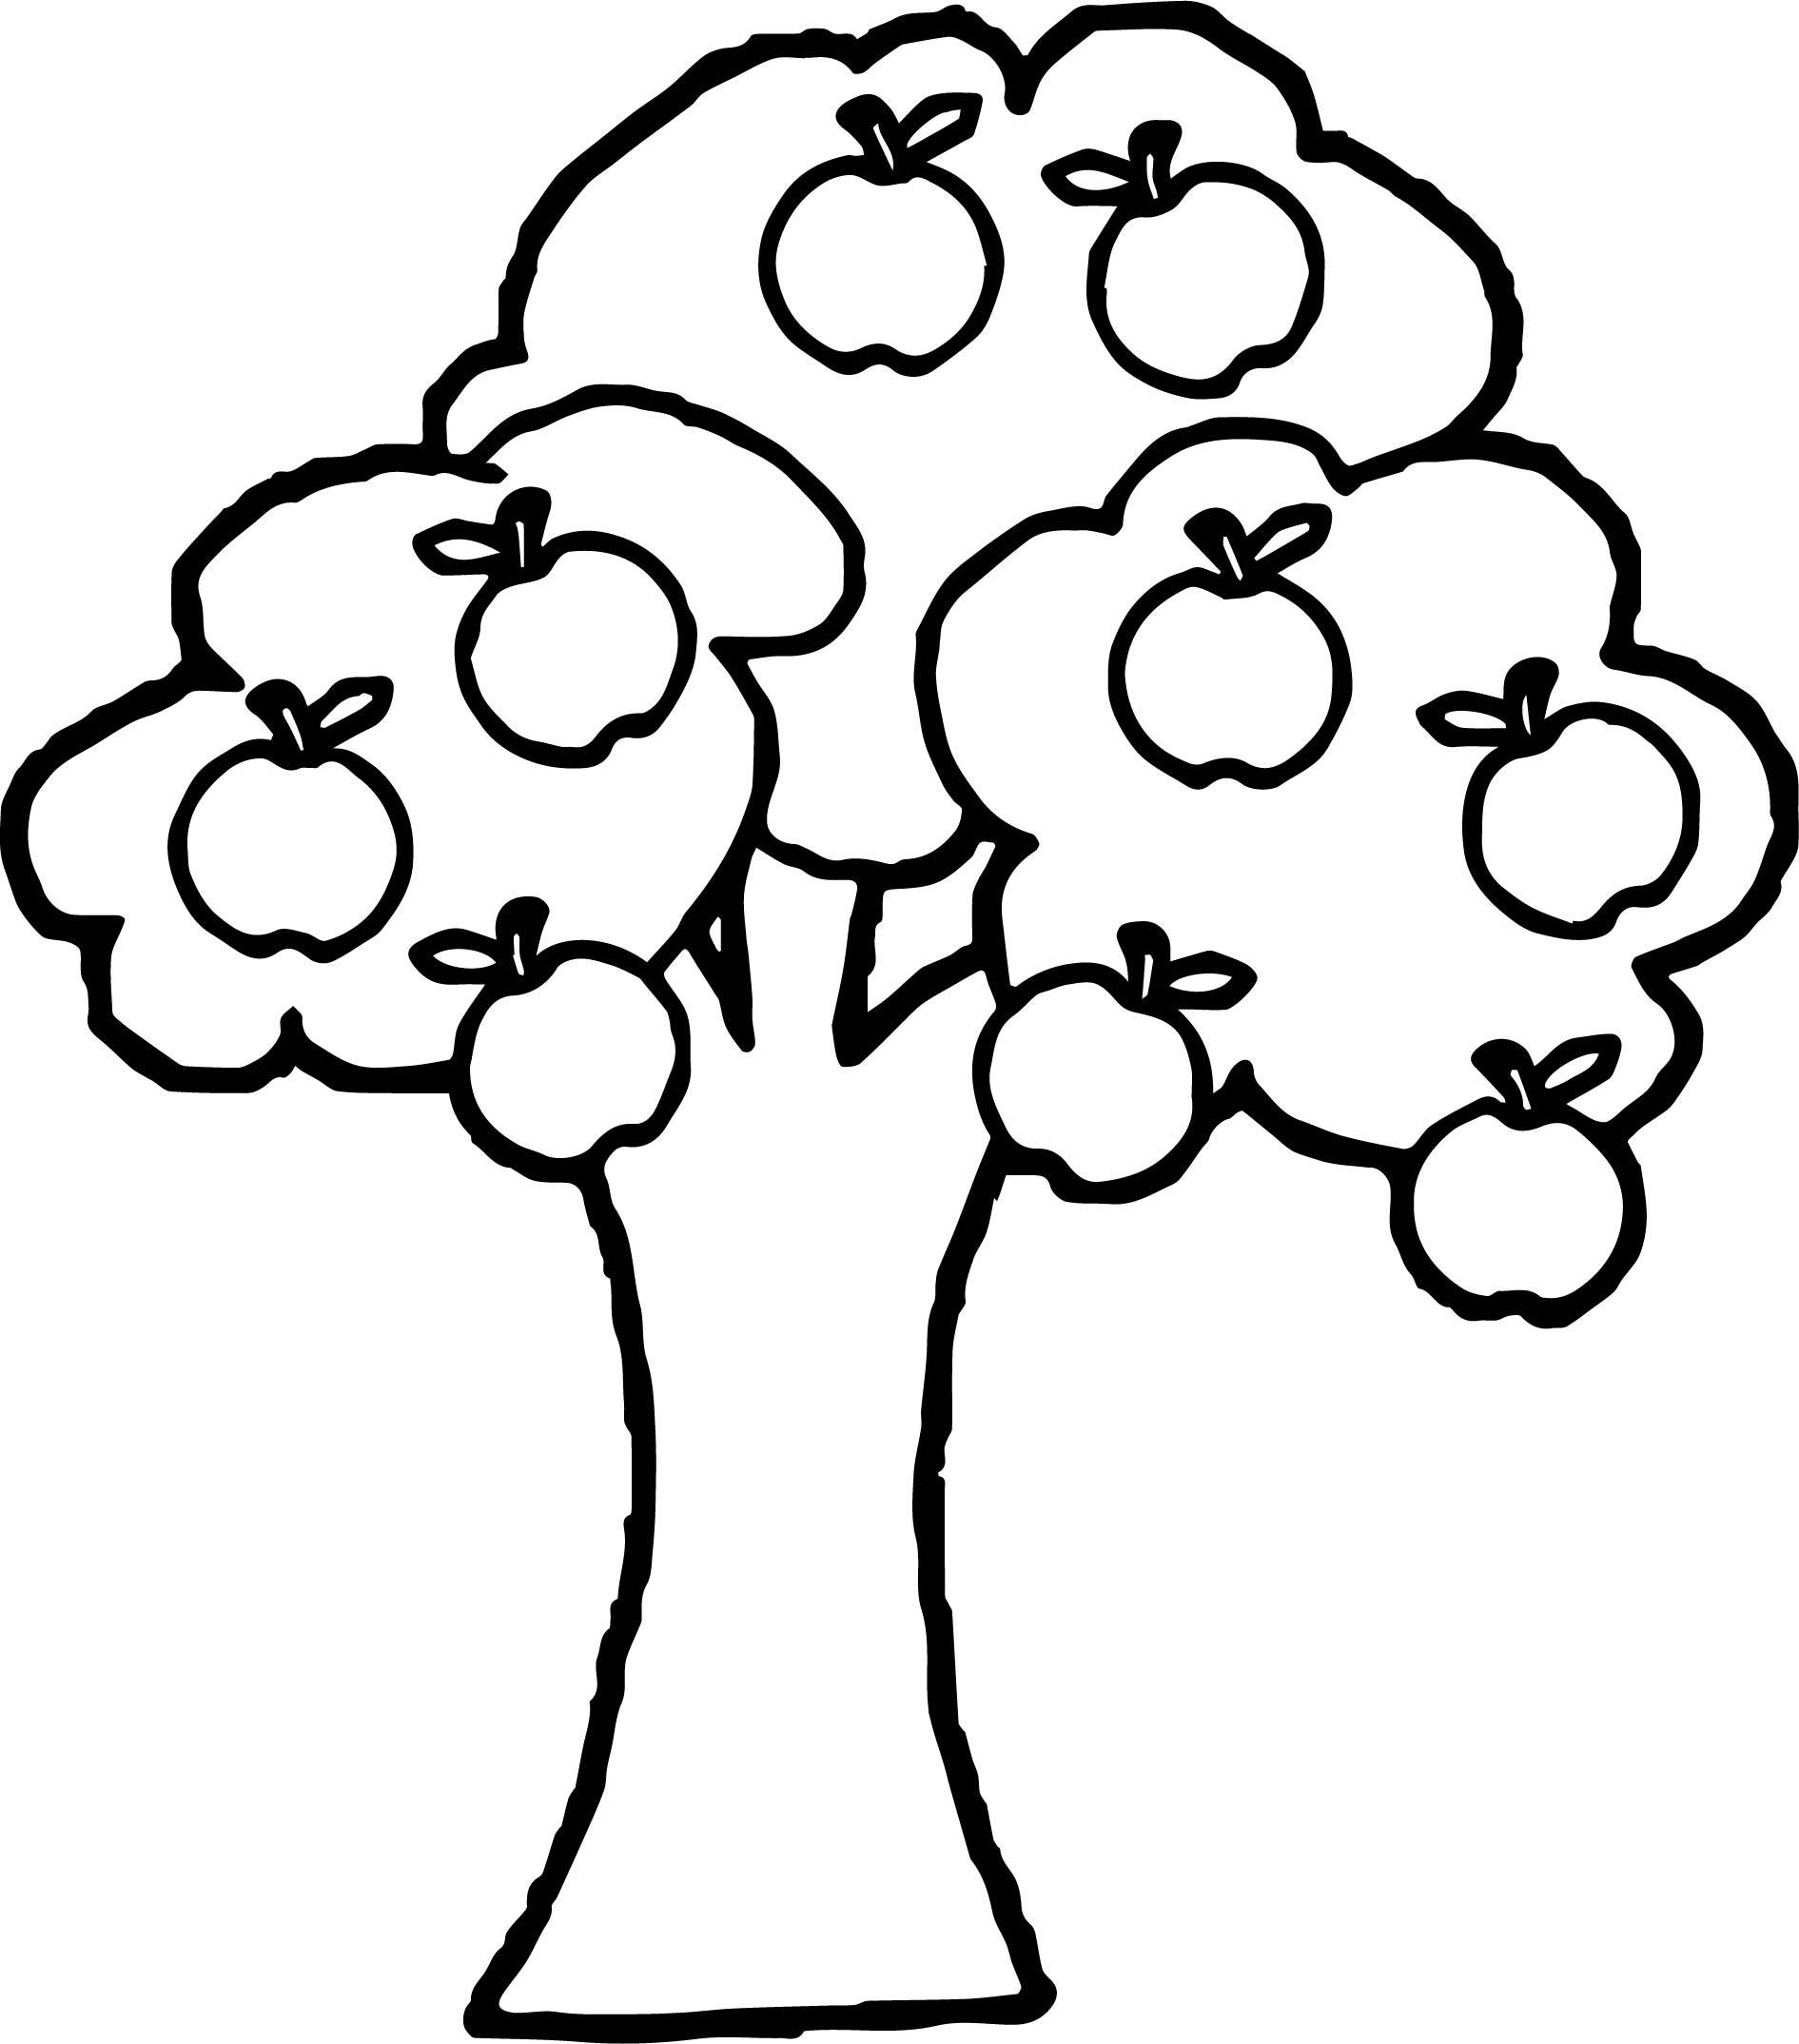 Harvests Two Kids Harvests Apple Tree Coloring Pages Two Kids